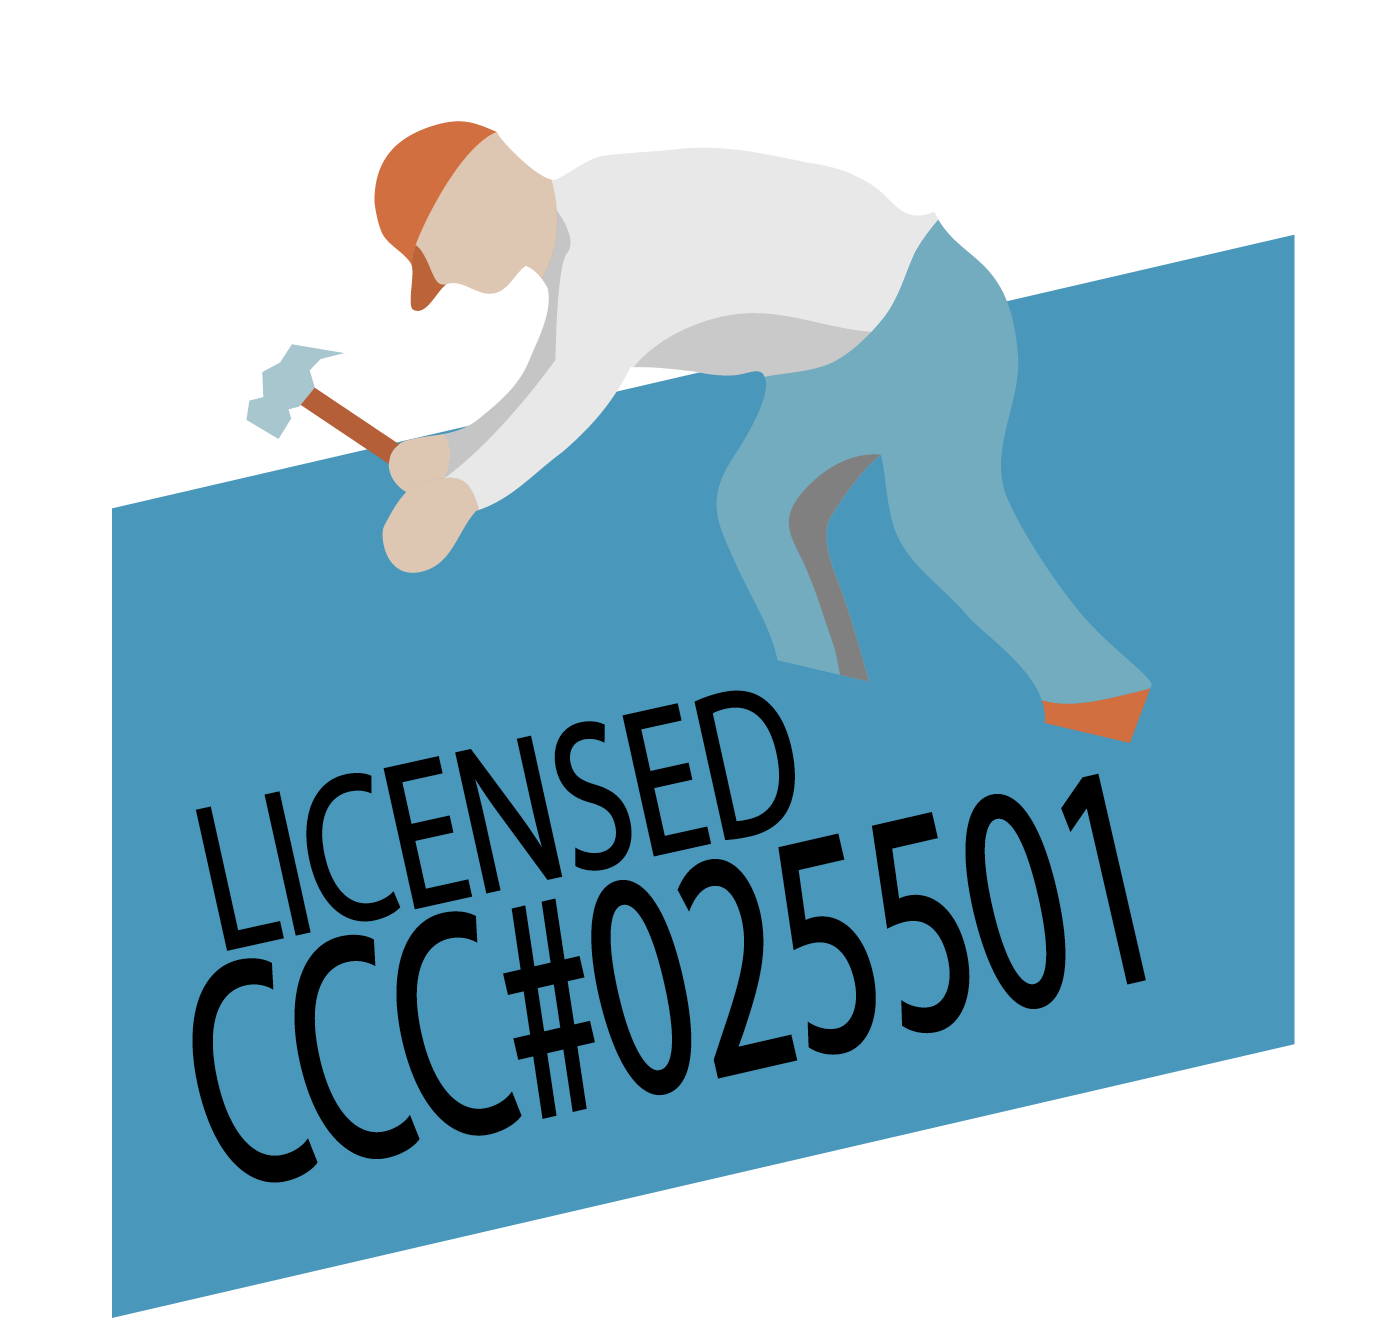 We keep up to date on zoning laws, building permit requirements and homeowners association guidelines. We get the job done on time and within your budget. License #CCC025501